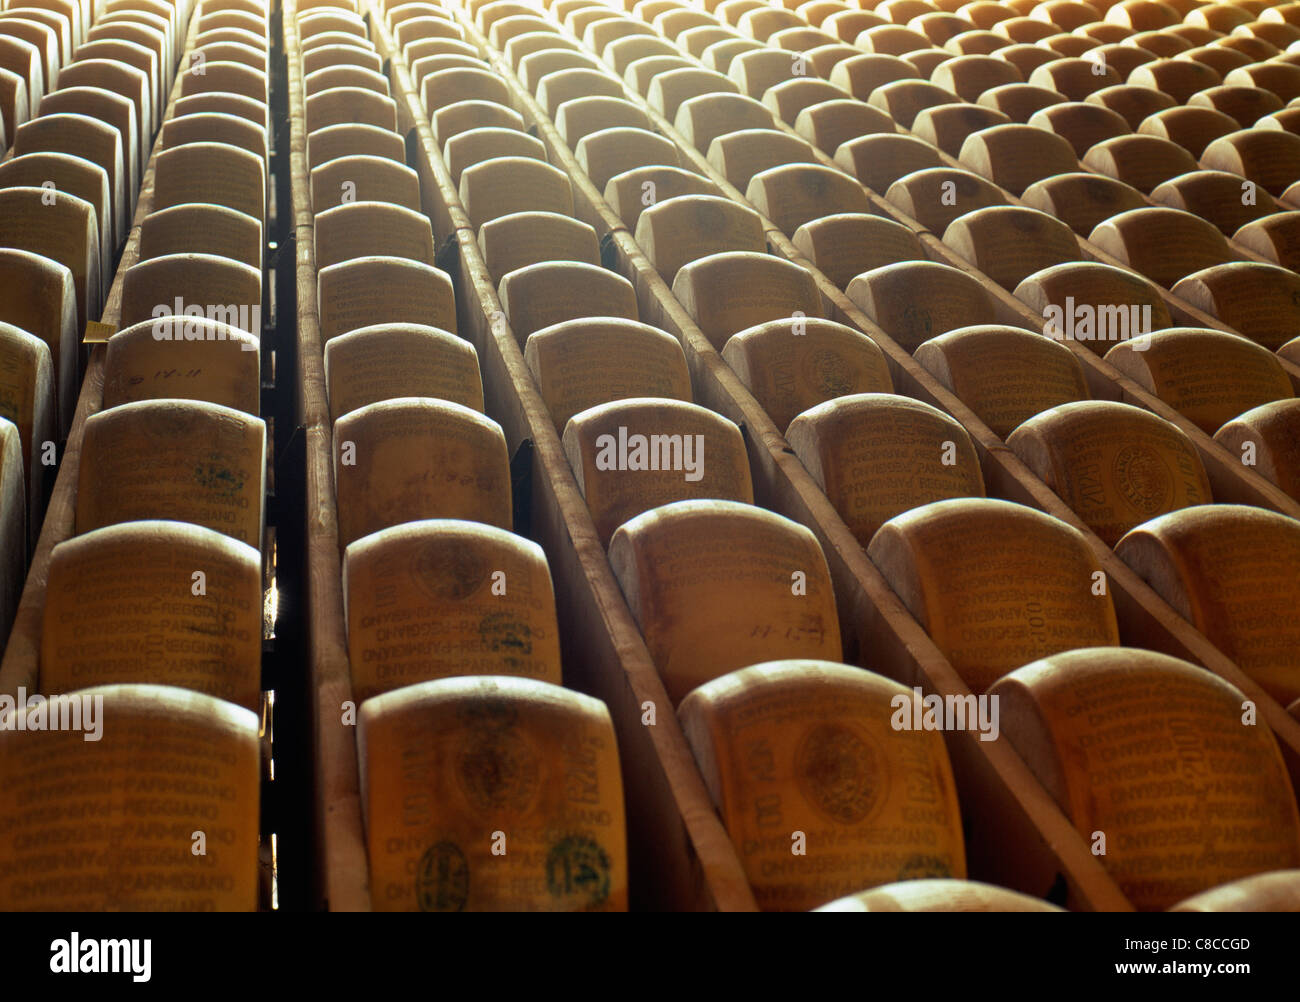 Maturation des fromages parmesan Photo Stock